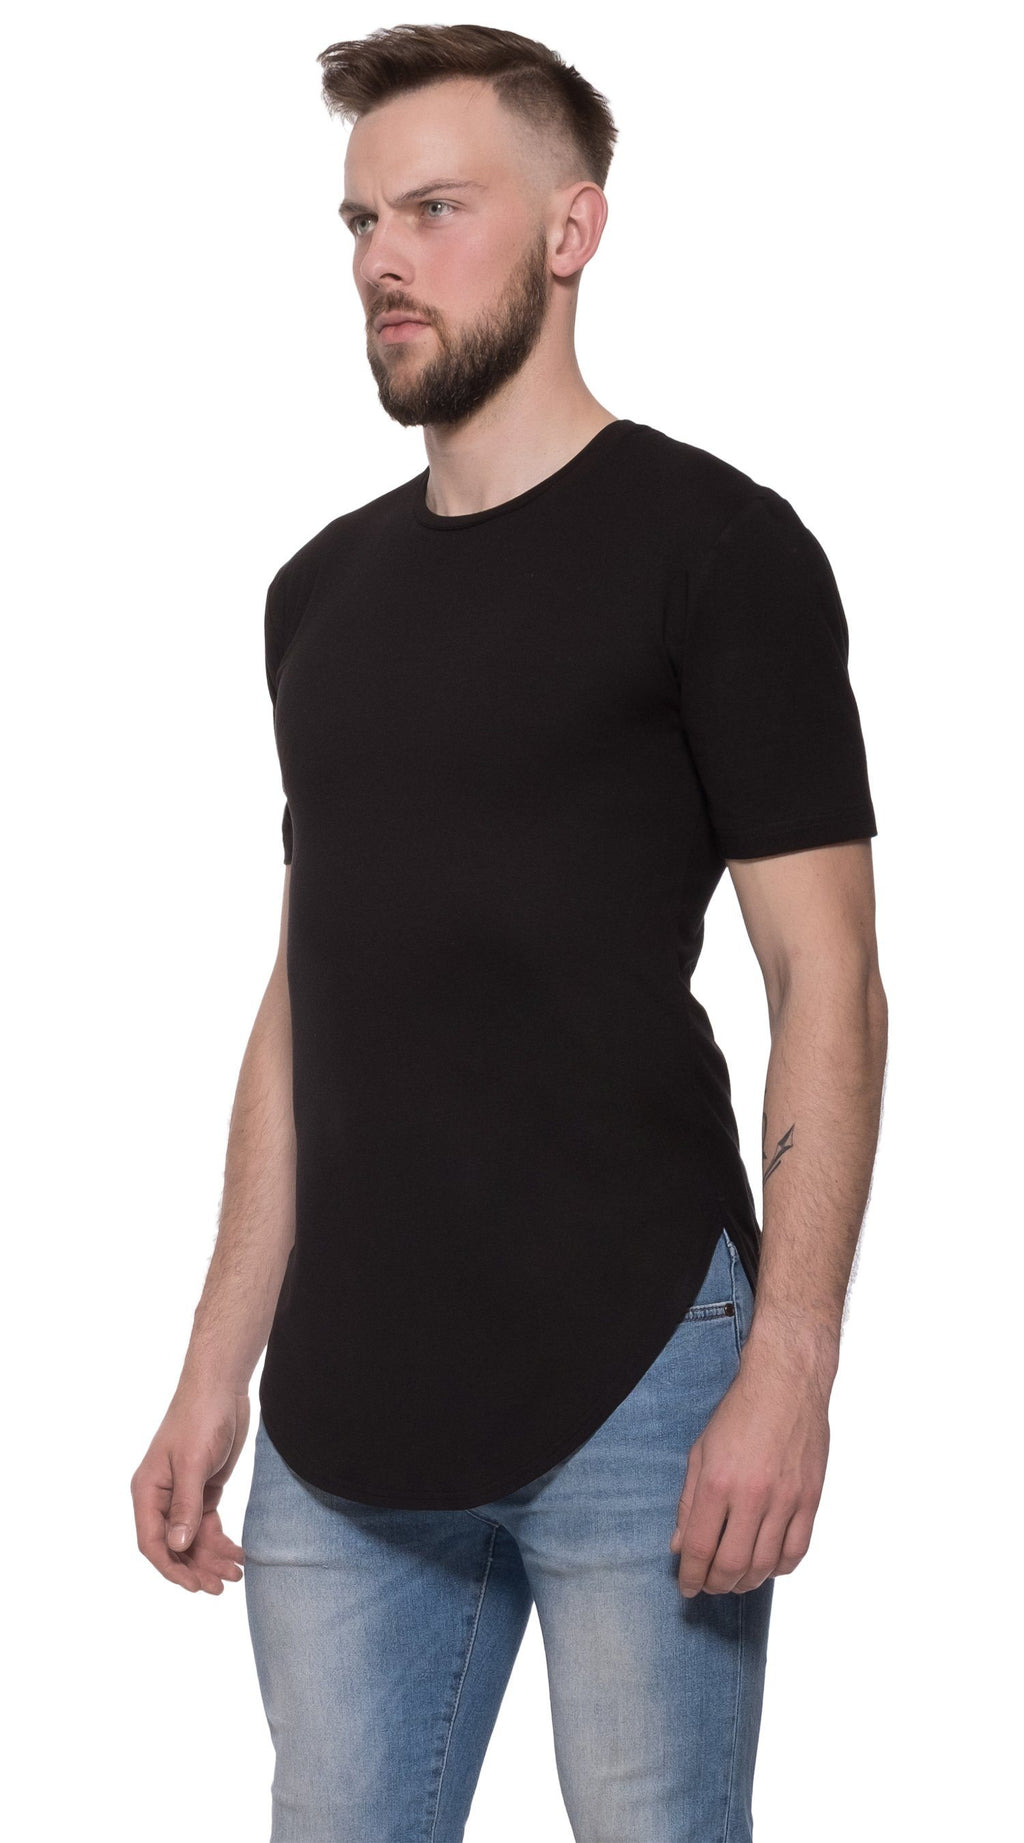 TheG Man Viscose Basic 2/2 Long Tee // black